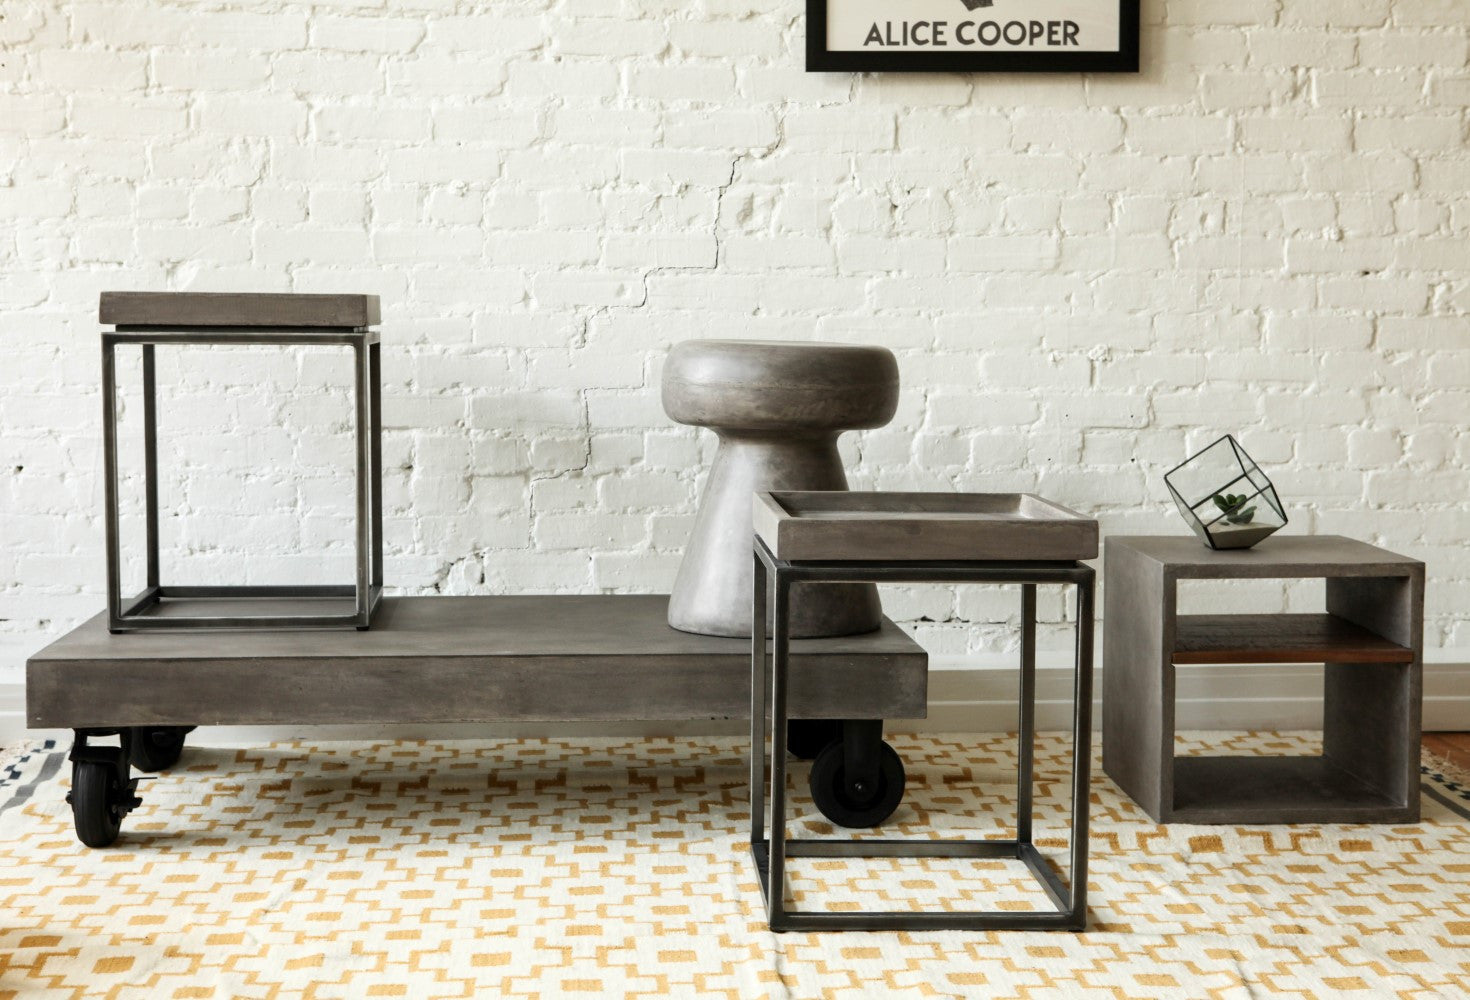 Amazing Vega Concrete Coffee Table On Wheels   Tables   Furniture Maison. Amazing Design